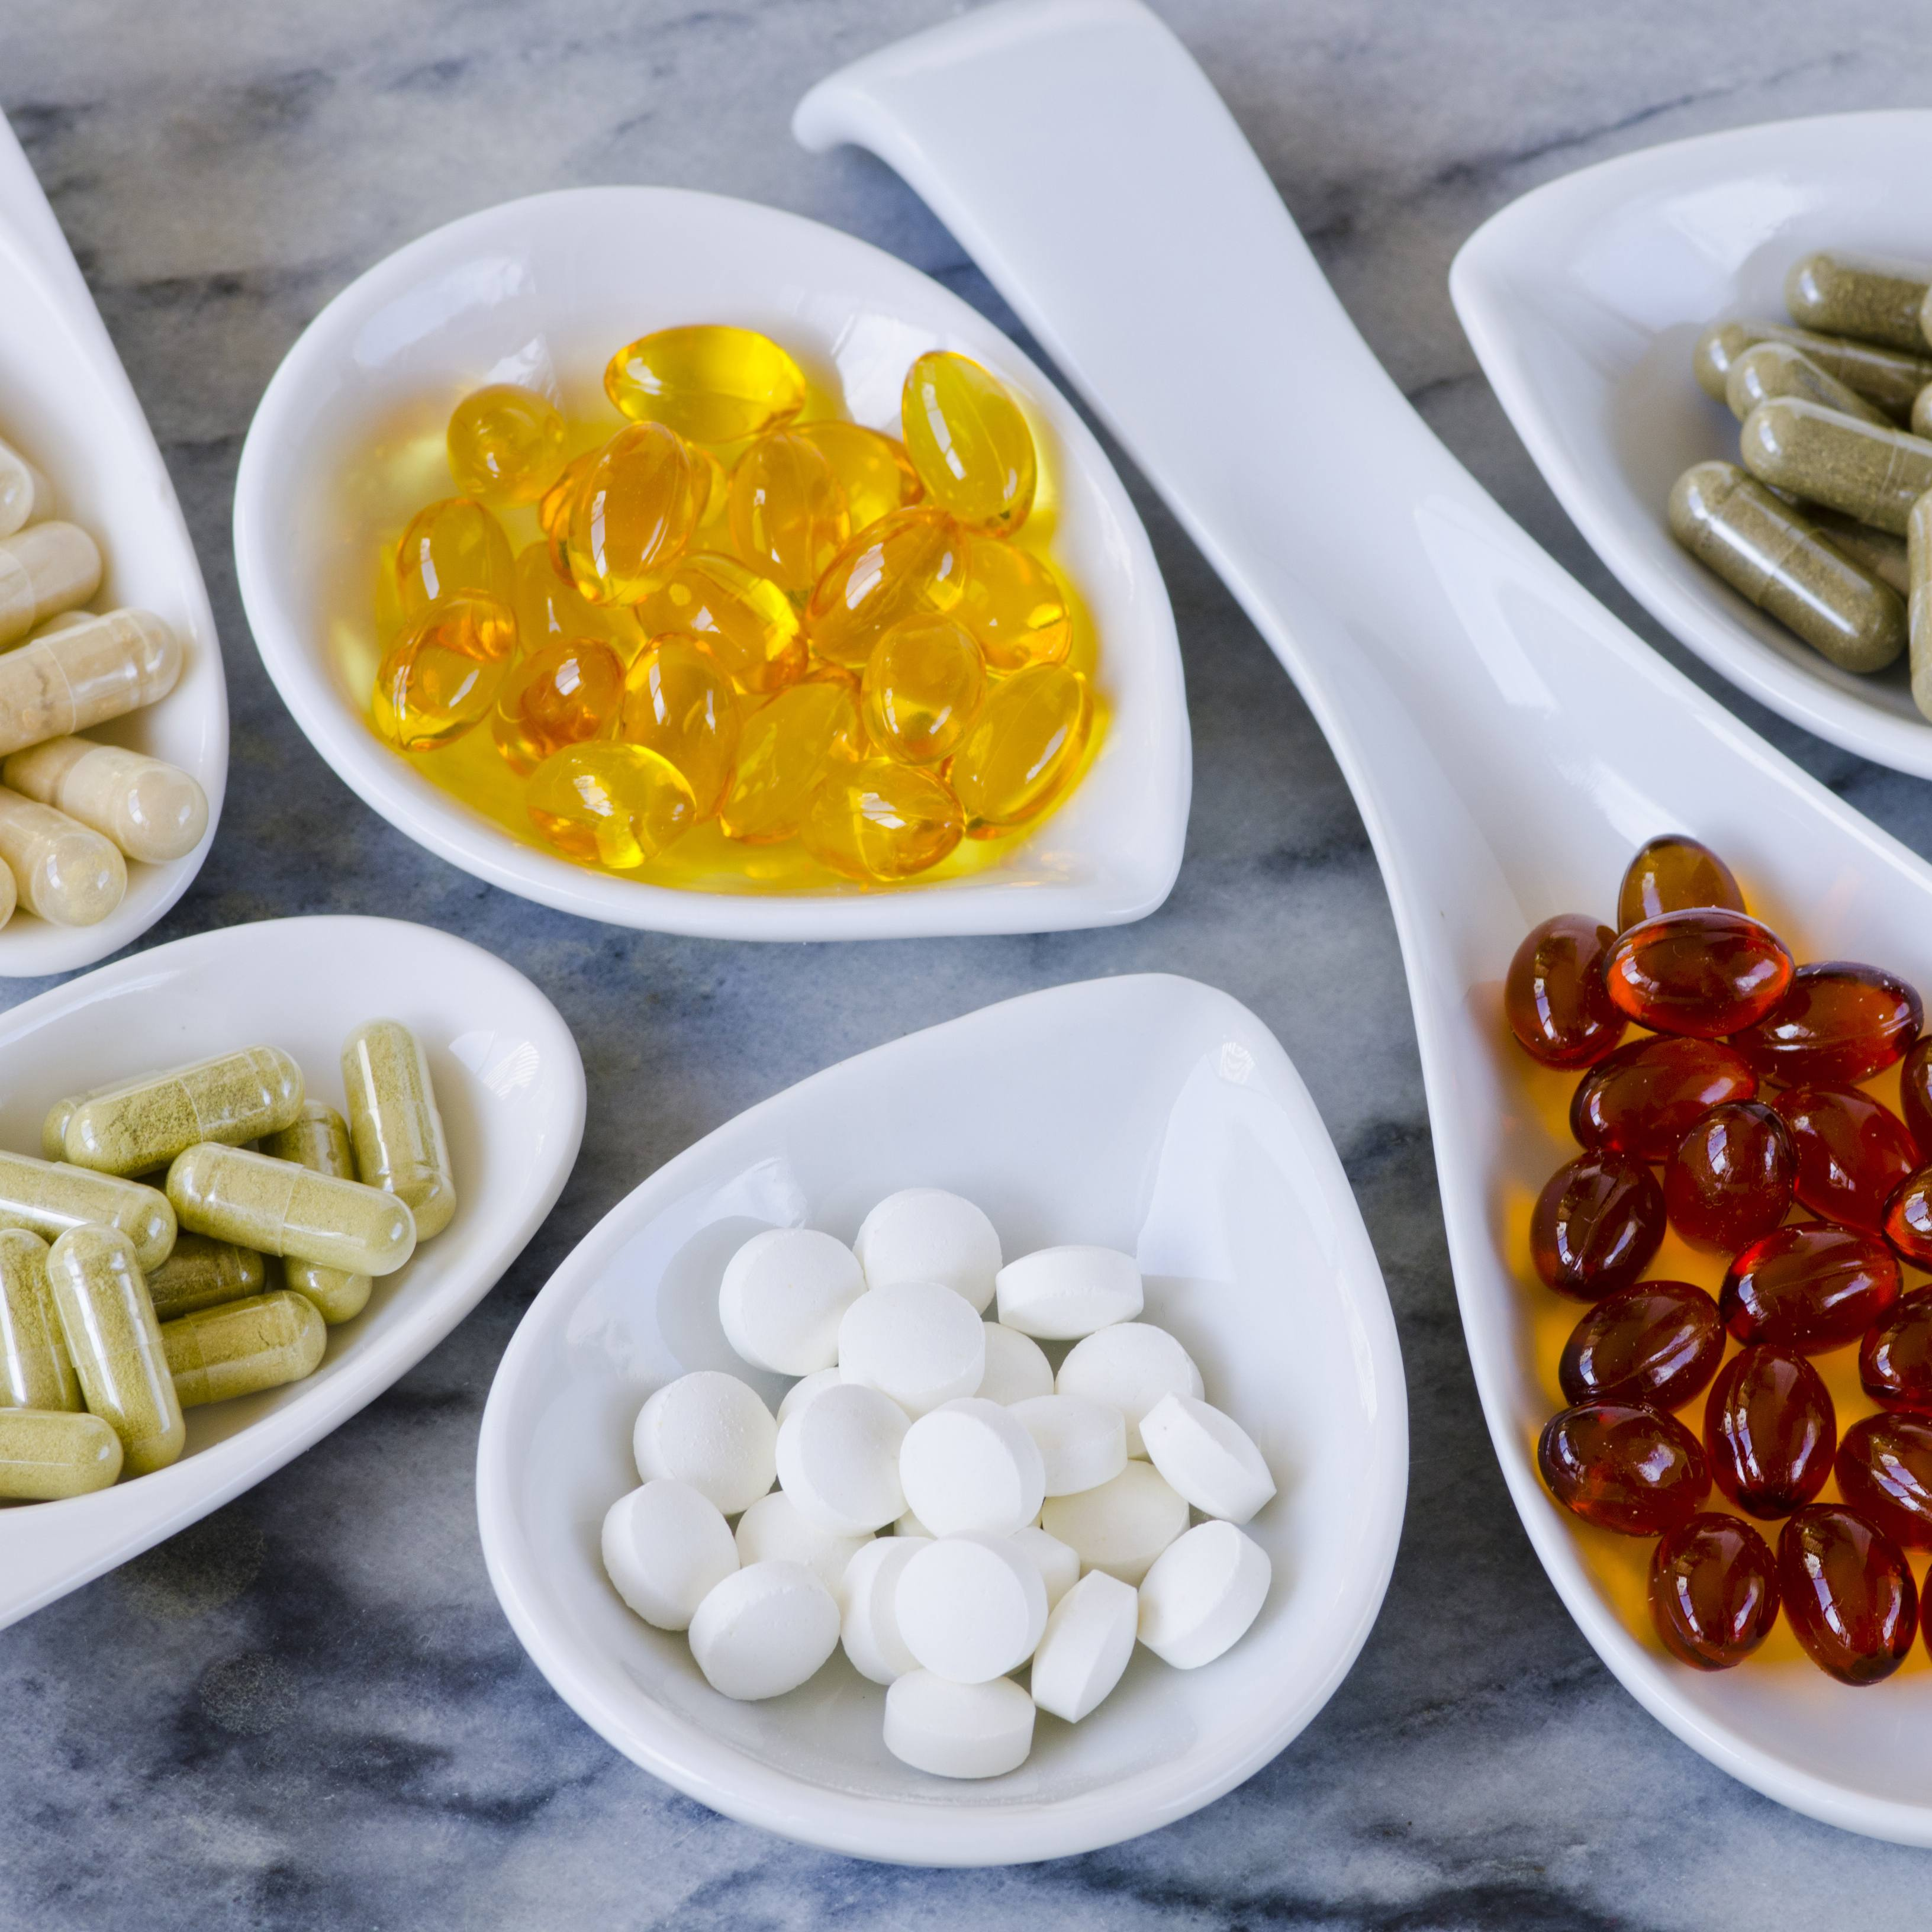 a variety of dietary supplements in white containers on a granite countertop